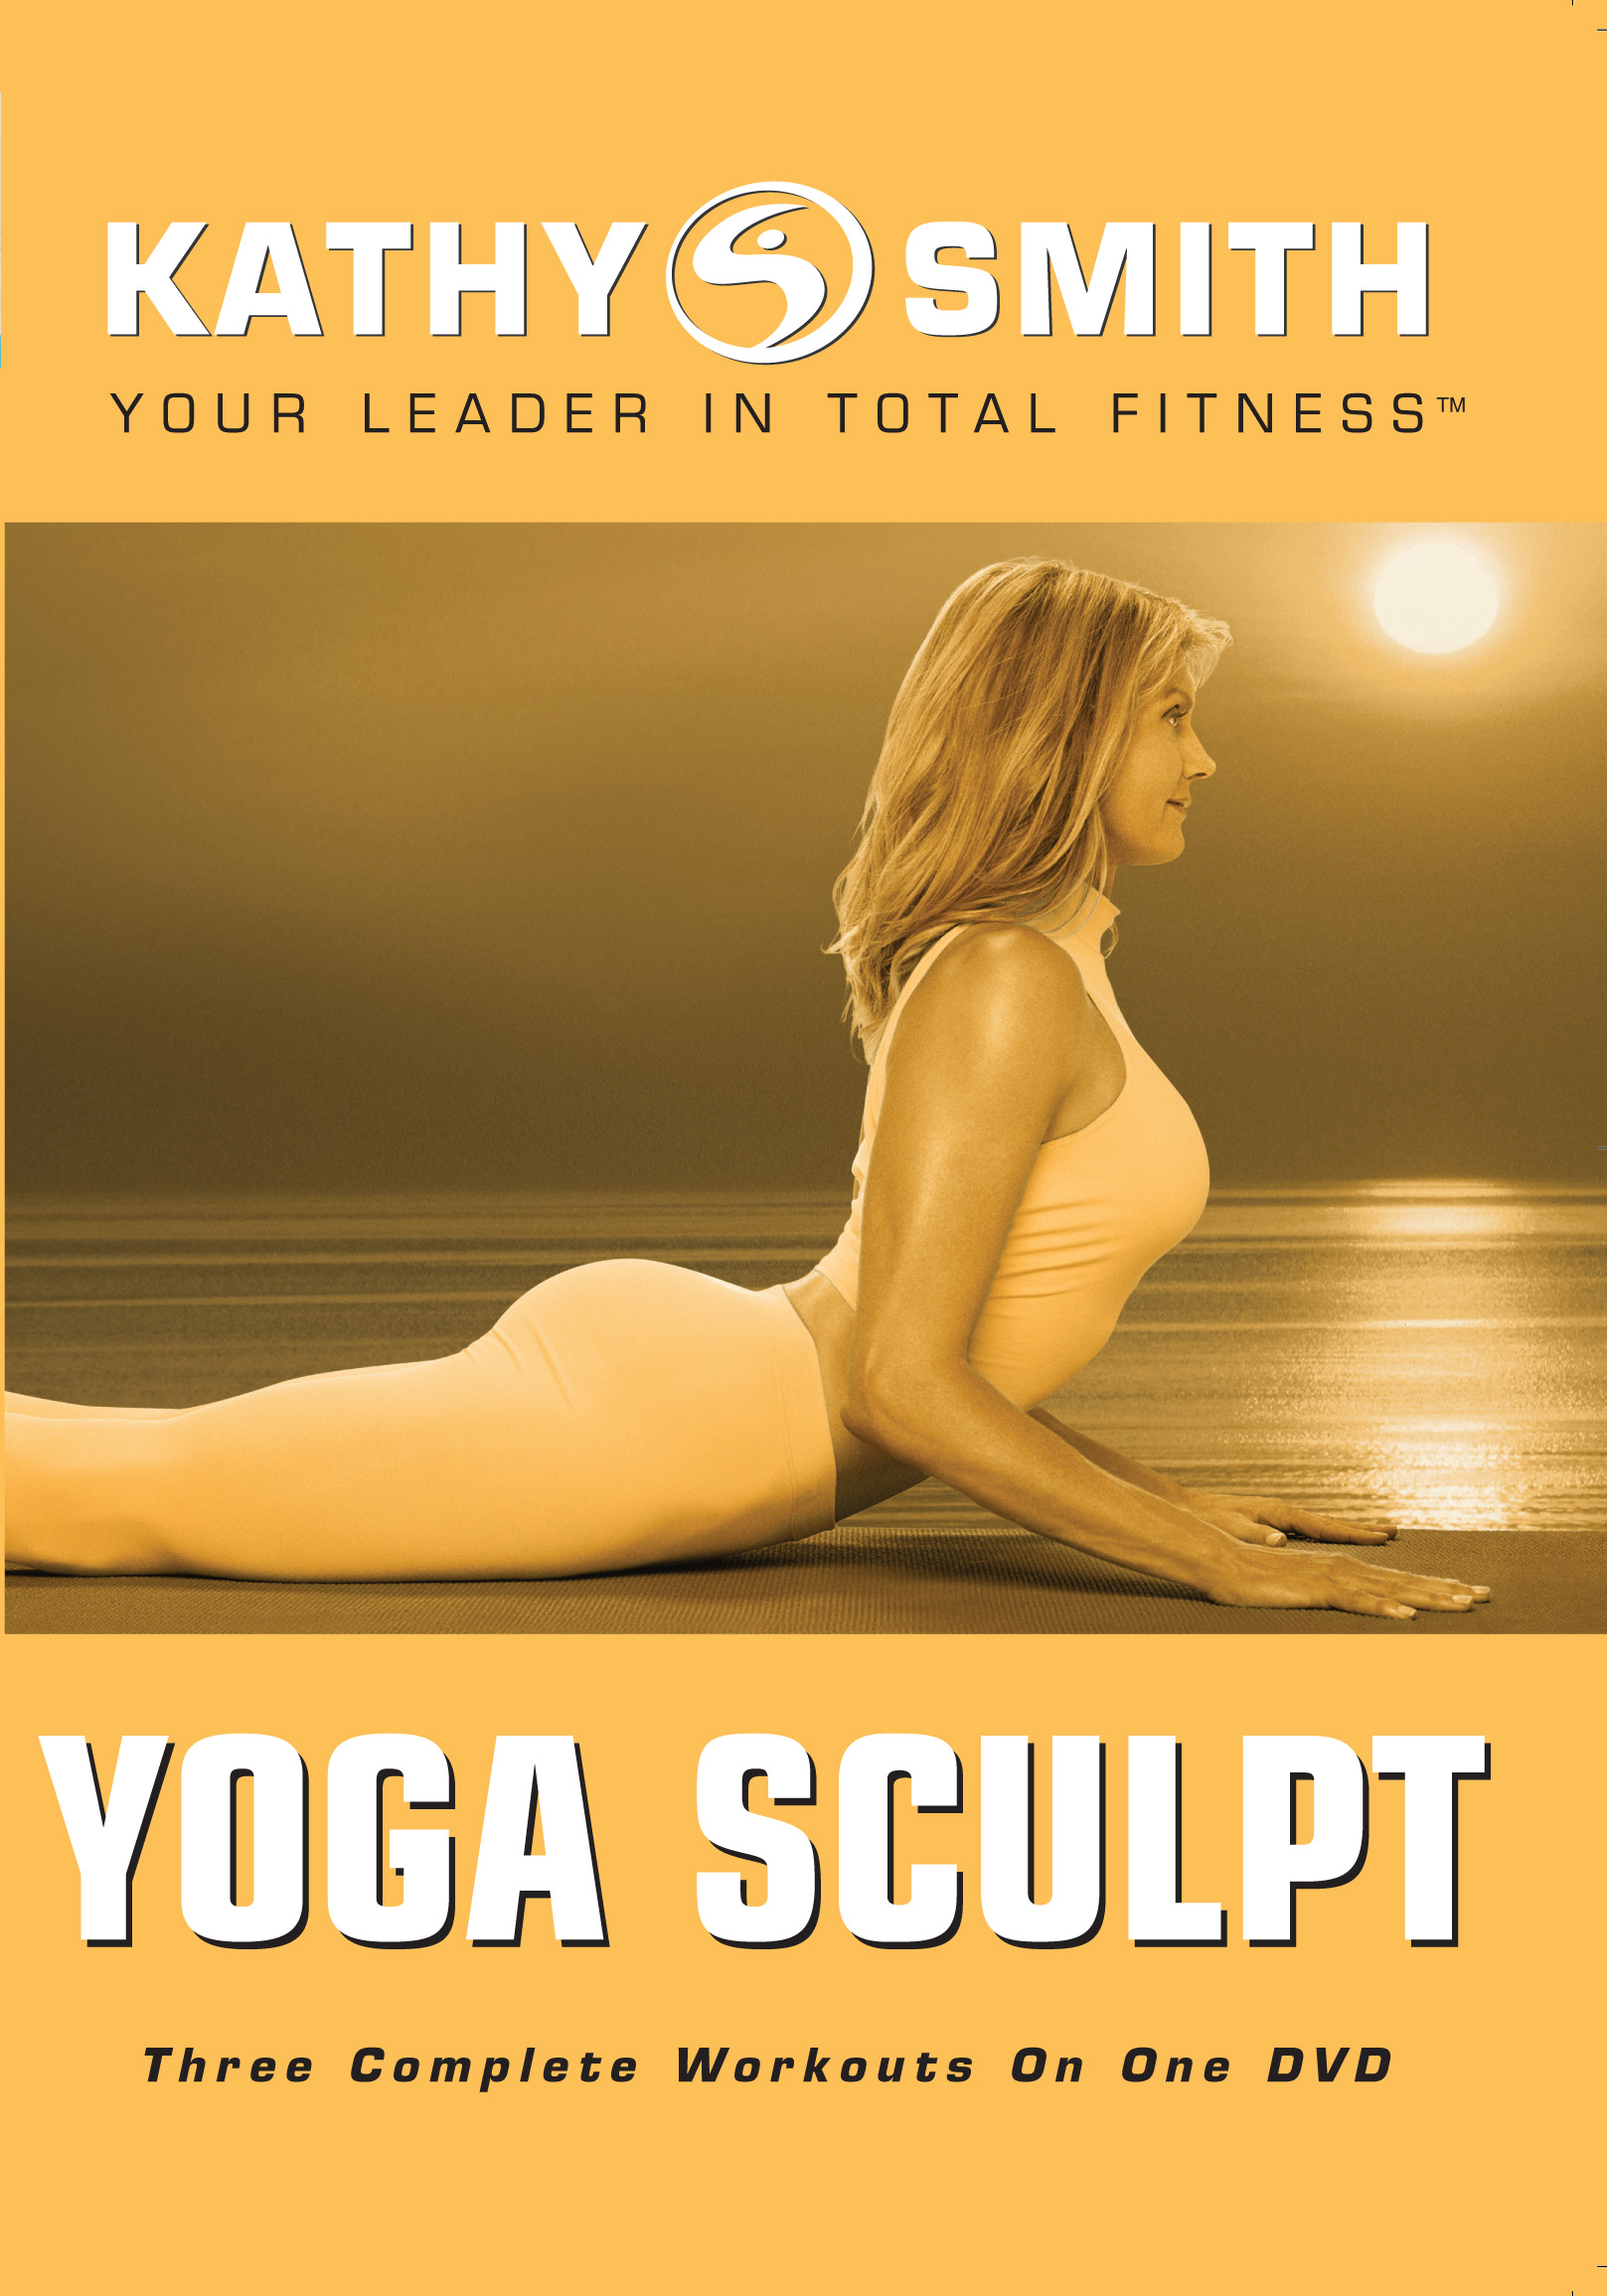 Kathy Smith's Yoga Sculpt